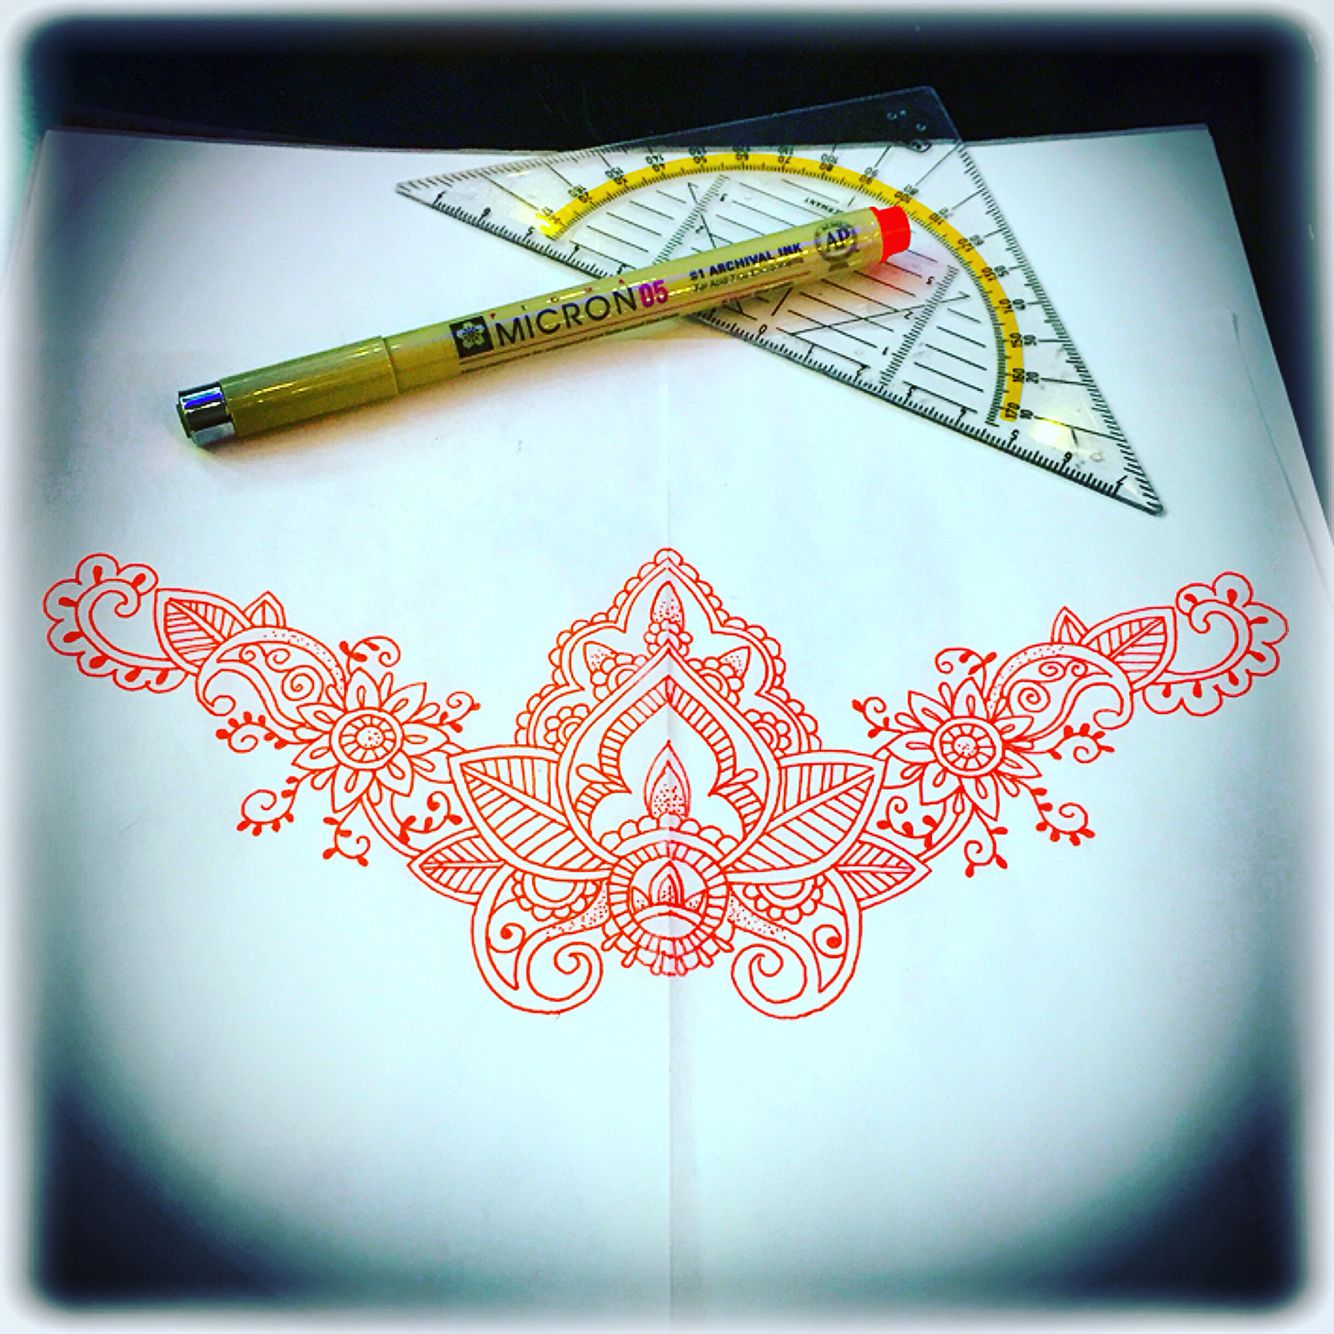 Mandala tattoo design for under the chest or lower back